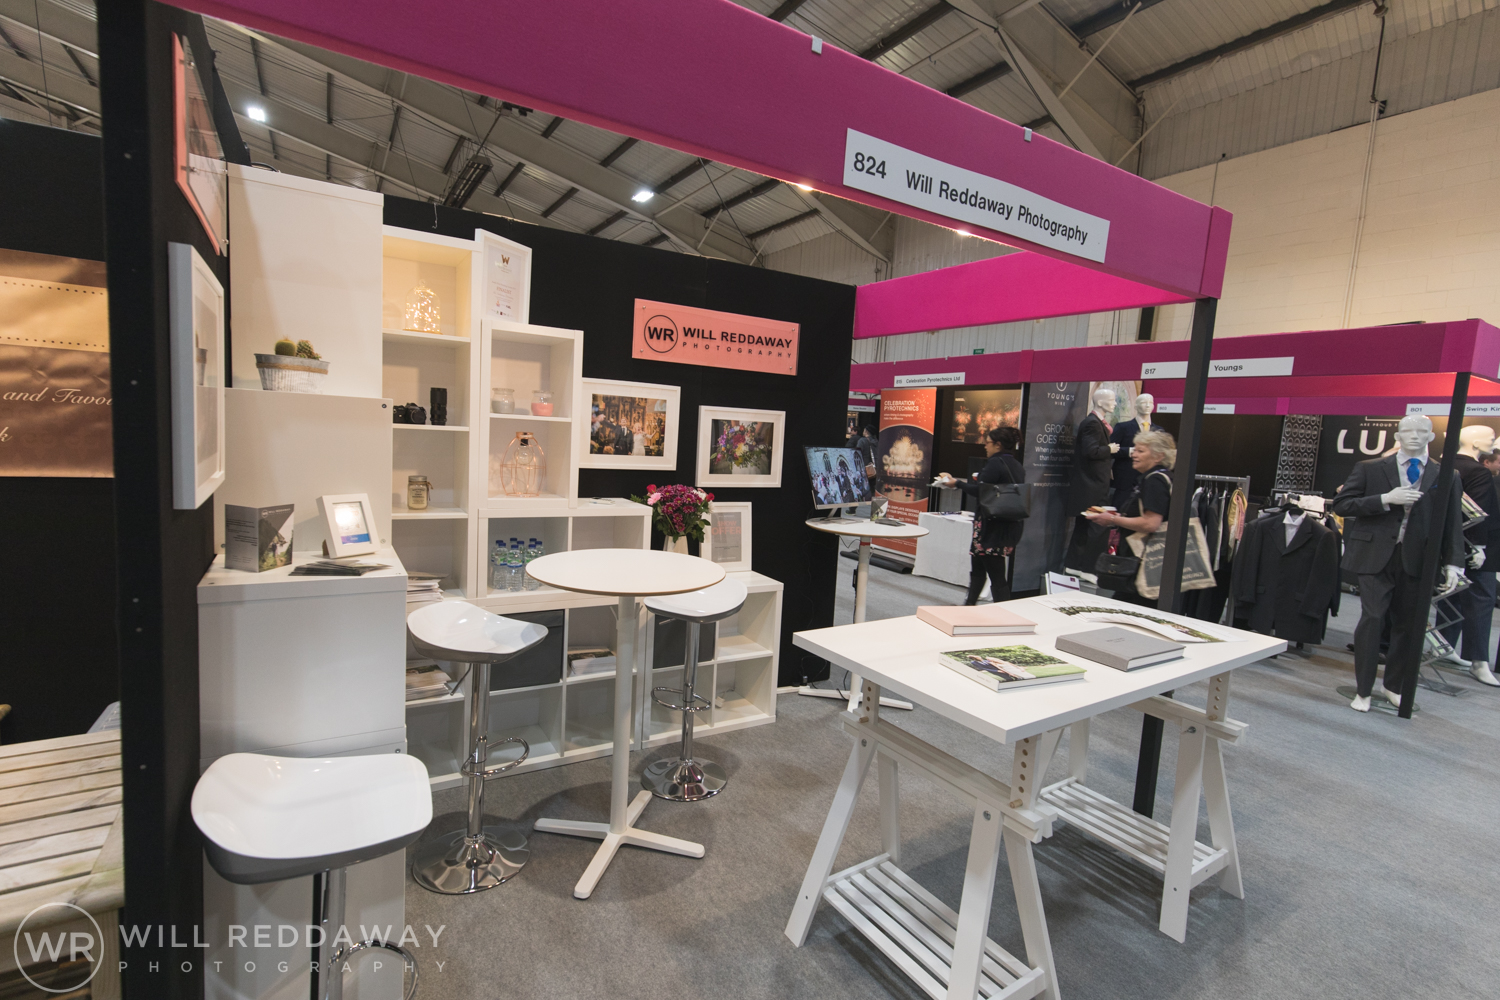 Devon Wedding Photographer | Bride The Wedding Show | Wedding Show Stand